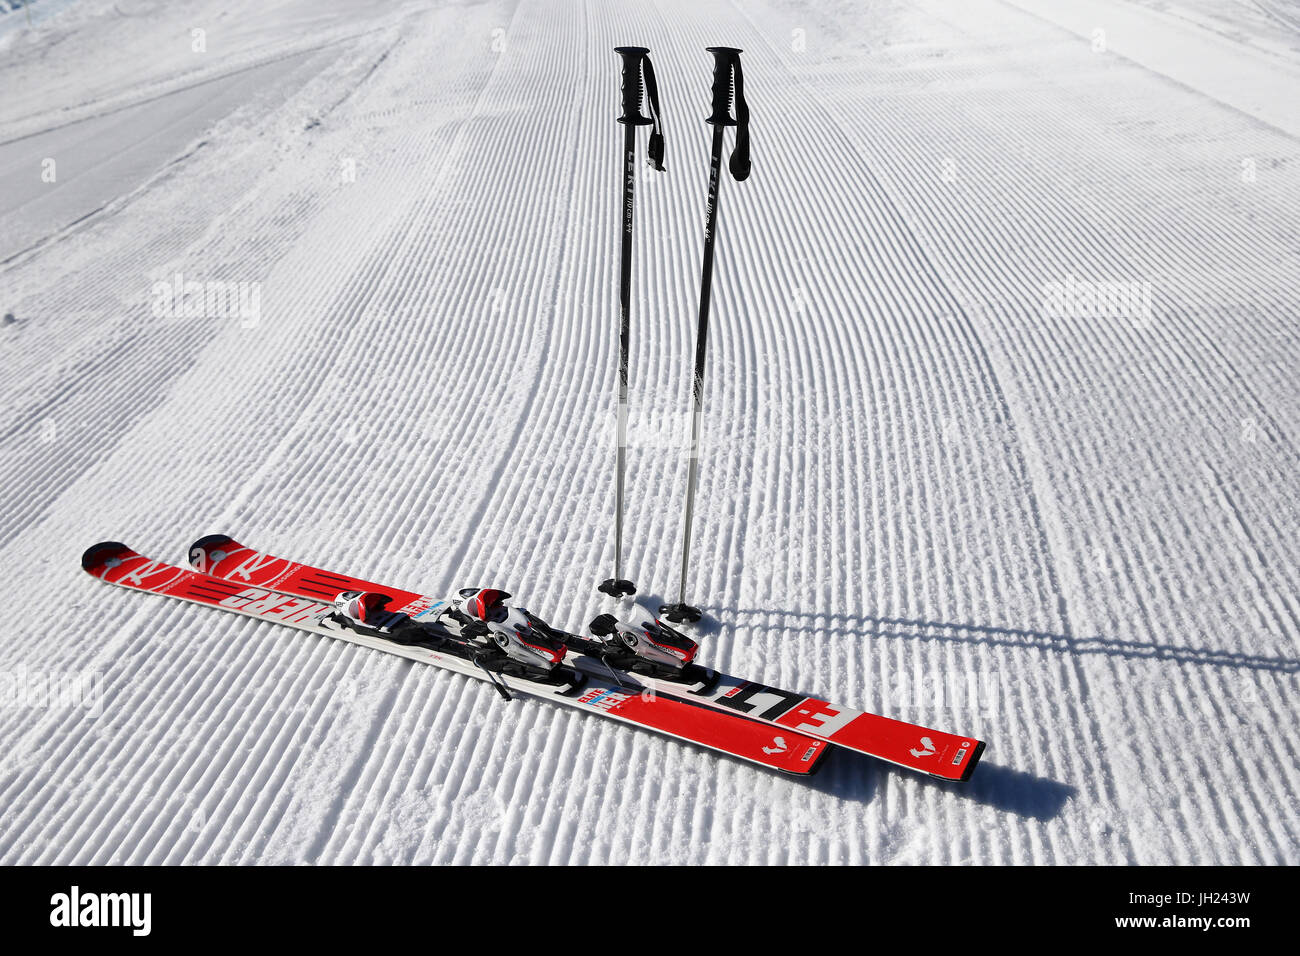 French Alps.  Skis and poles stuck in the snow. Groomed Ski Piste France. - Stock Image